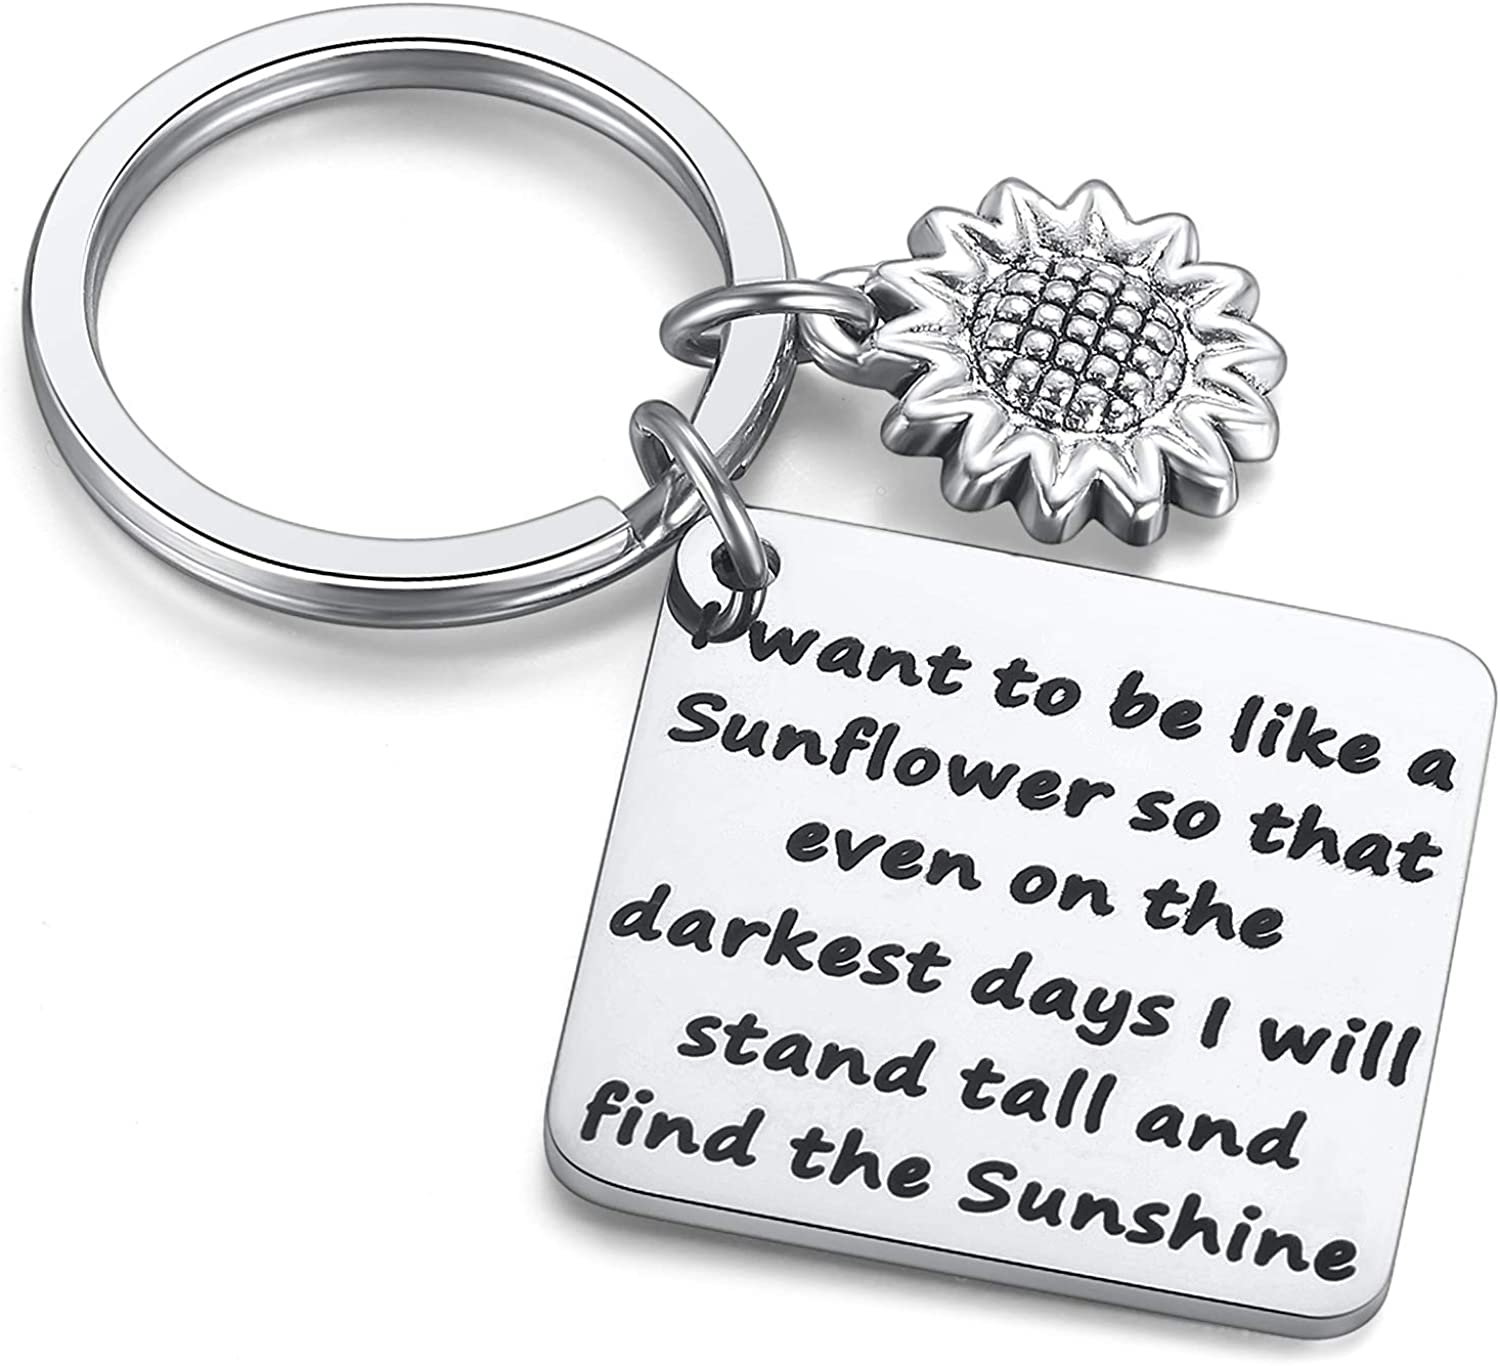 Sunflower Charm Keychain I Want to be Like a Sunflower Floral Key Chain Spiritual Gifts for Women